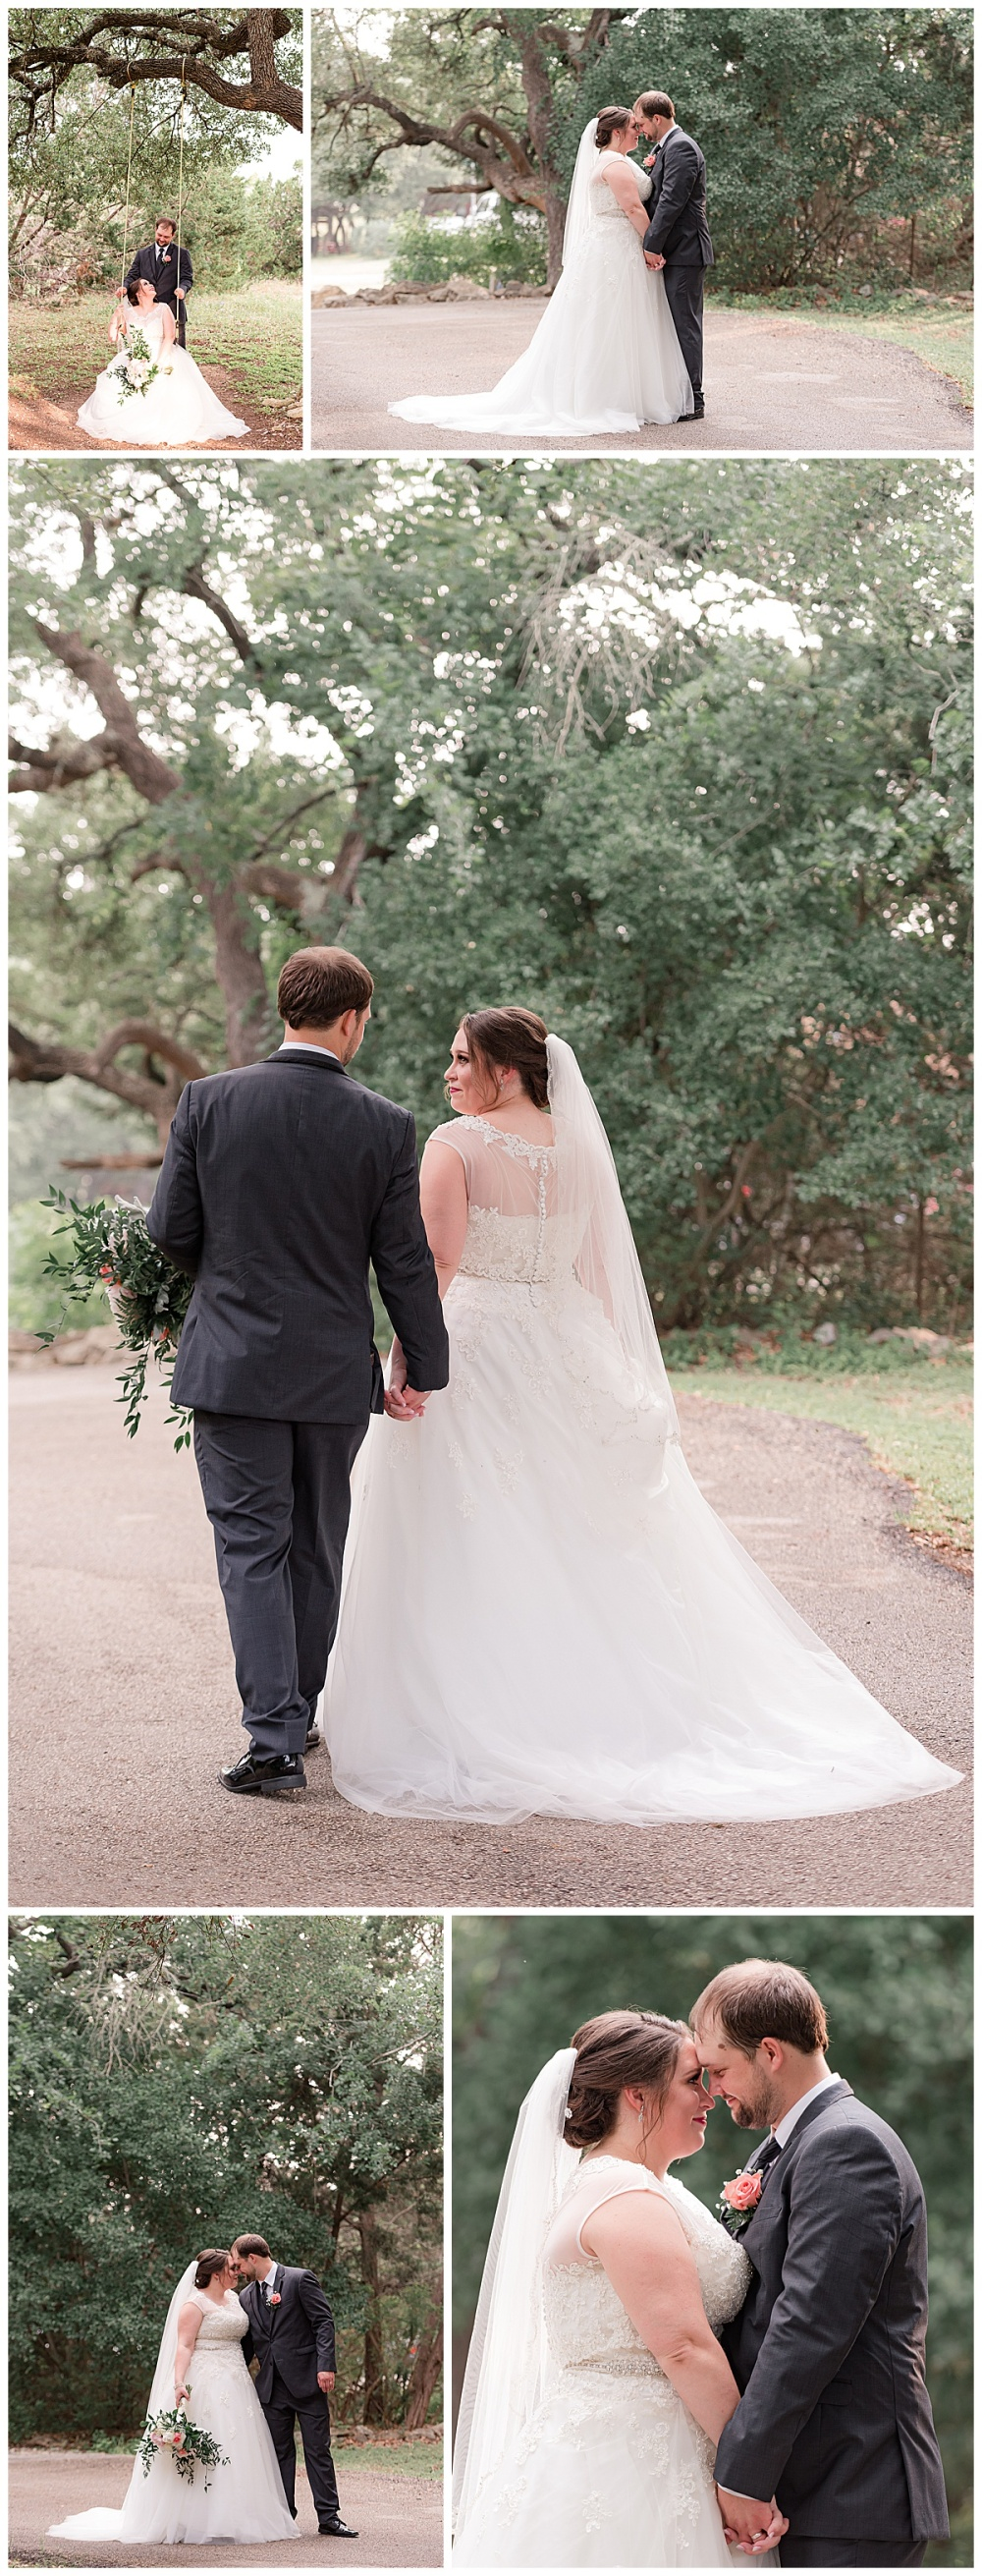 Michael-Tiffany-Wedding-New-Braunfels-Texas-Canyon-Lake-Cabins-and-Cottages-Carly-Barton-Photography_0032.jpg